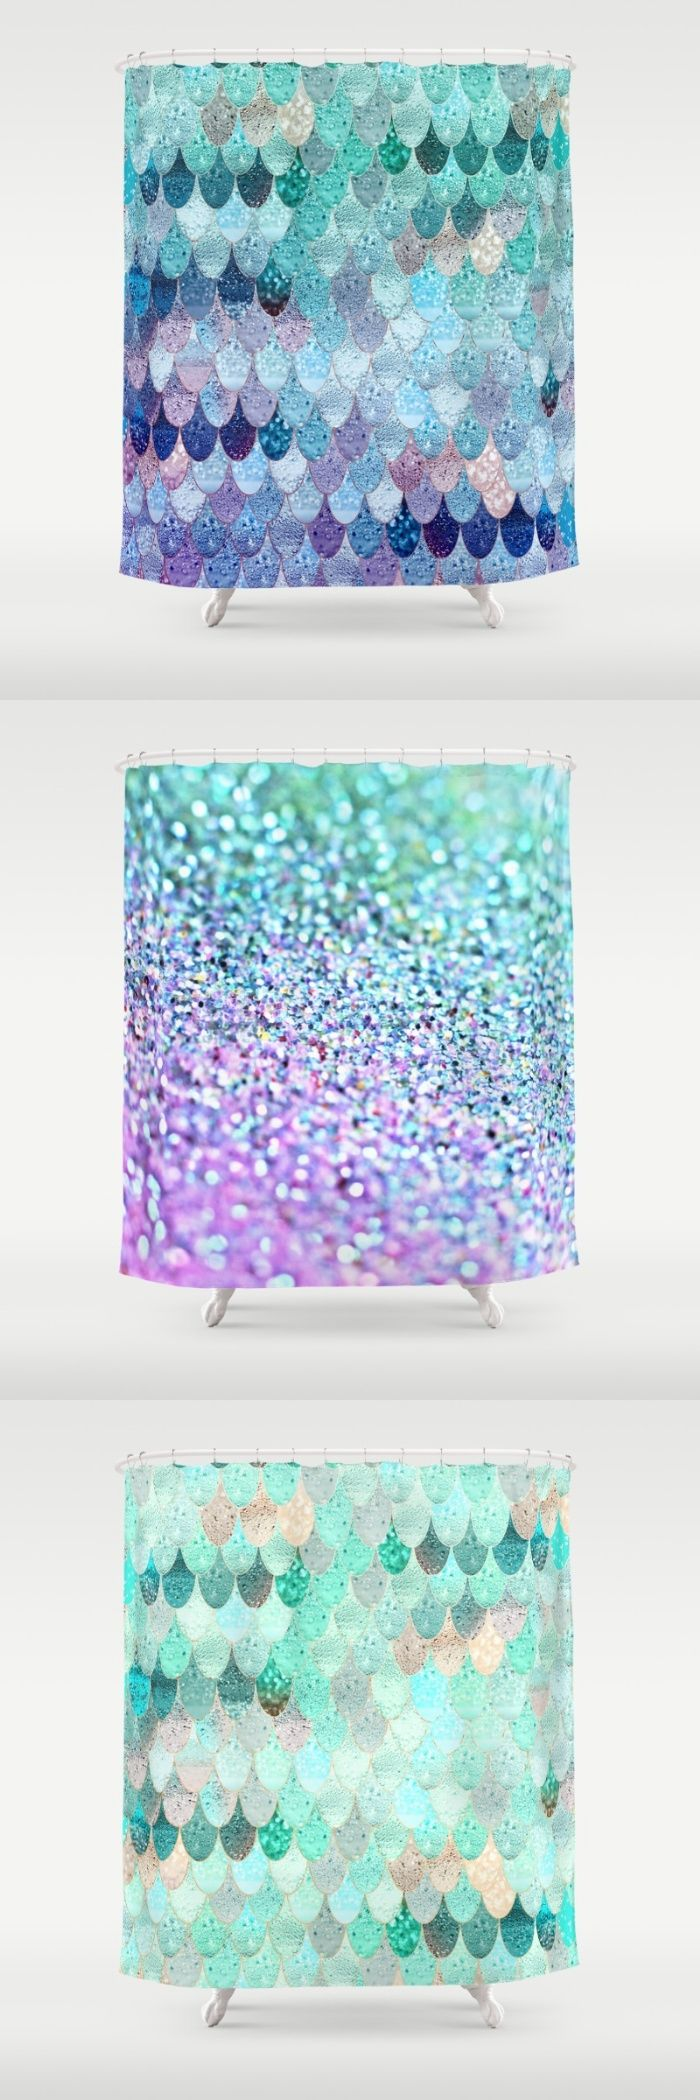 Mermaid shower curtains - Summer Mermaid Ii Shower Curtain